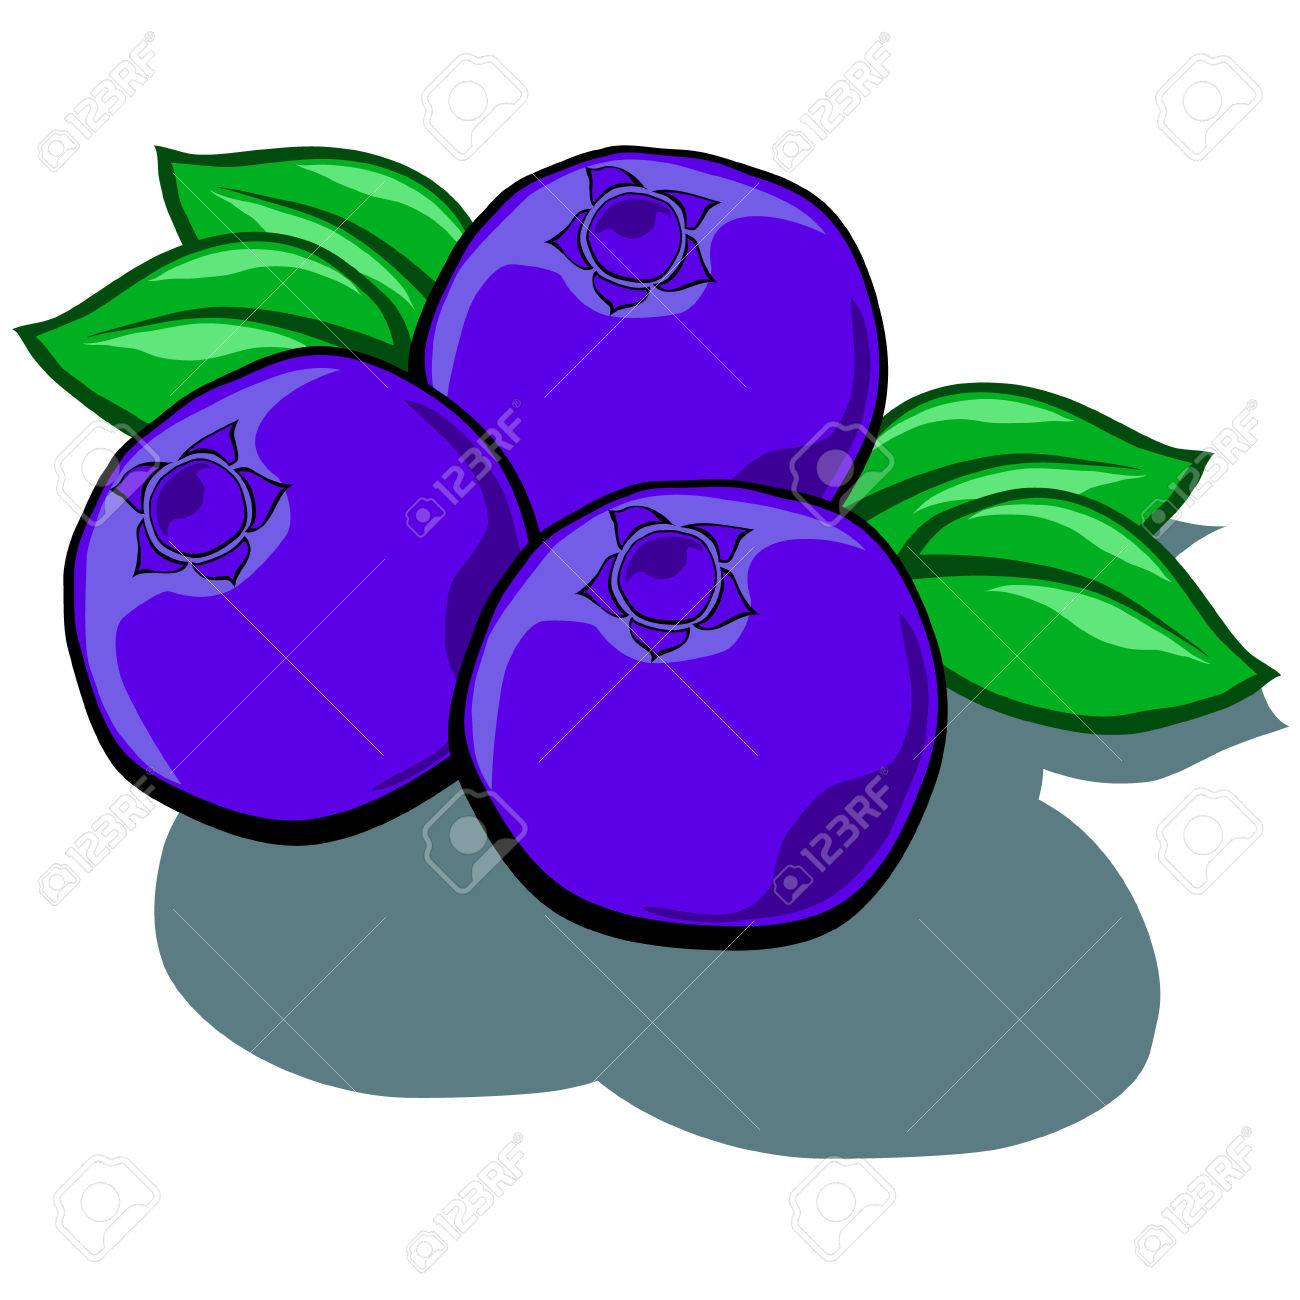 Images Of Cartoon Blueberries